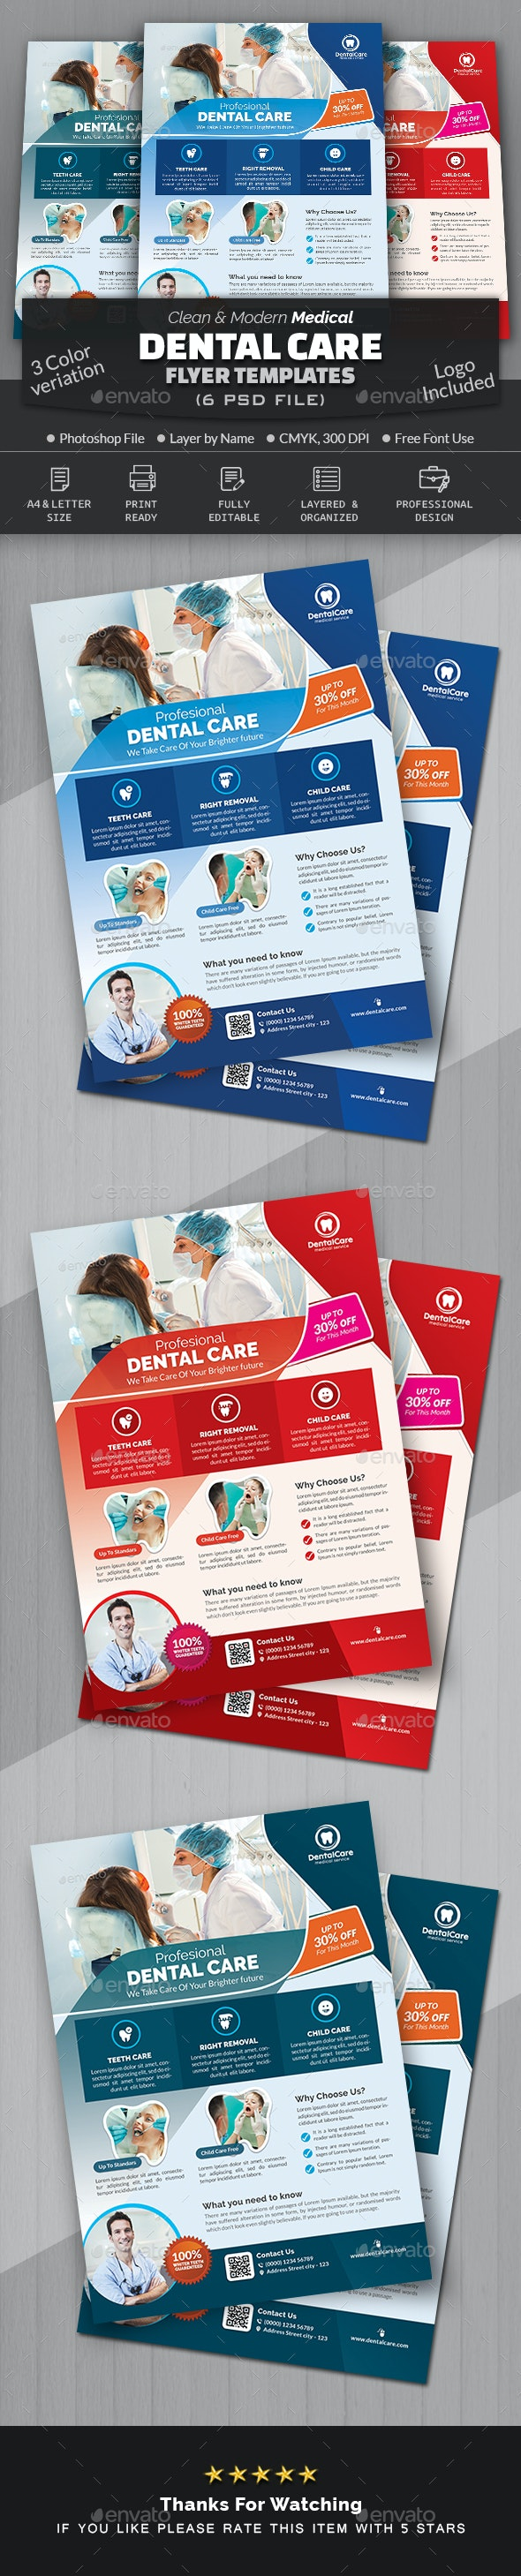 Dental Flyer Template - Corporate Flyers